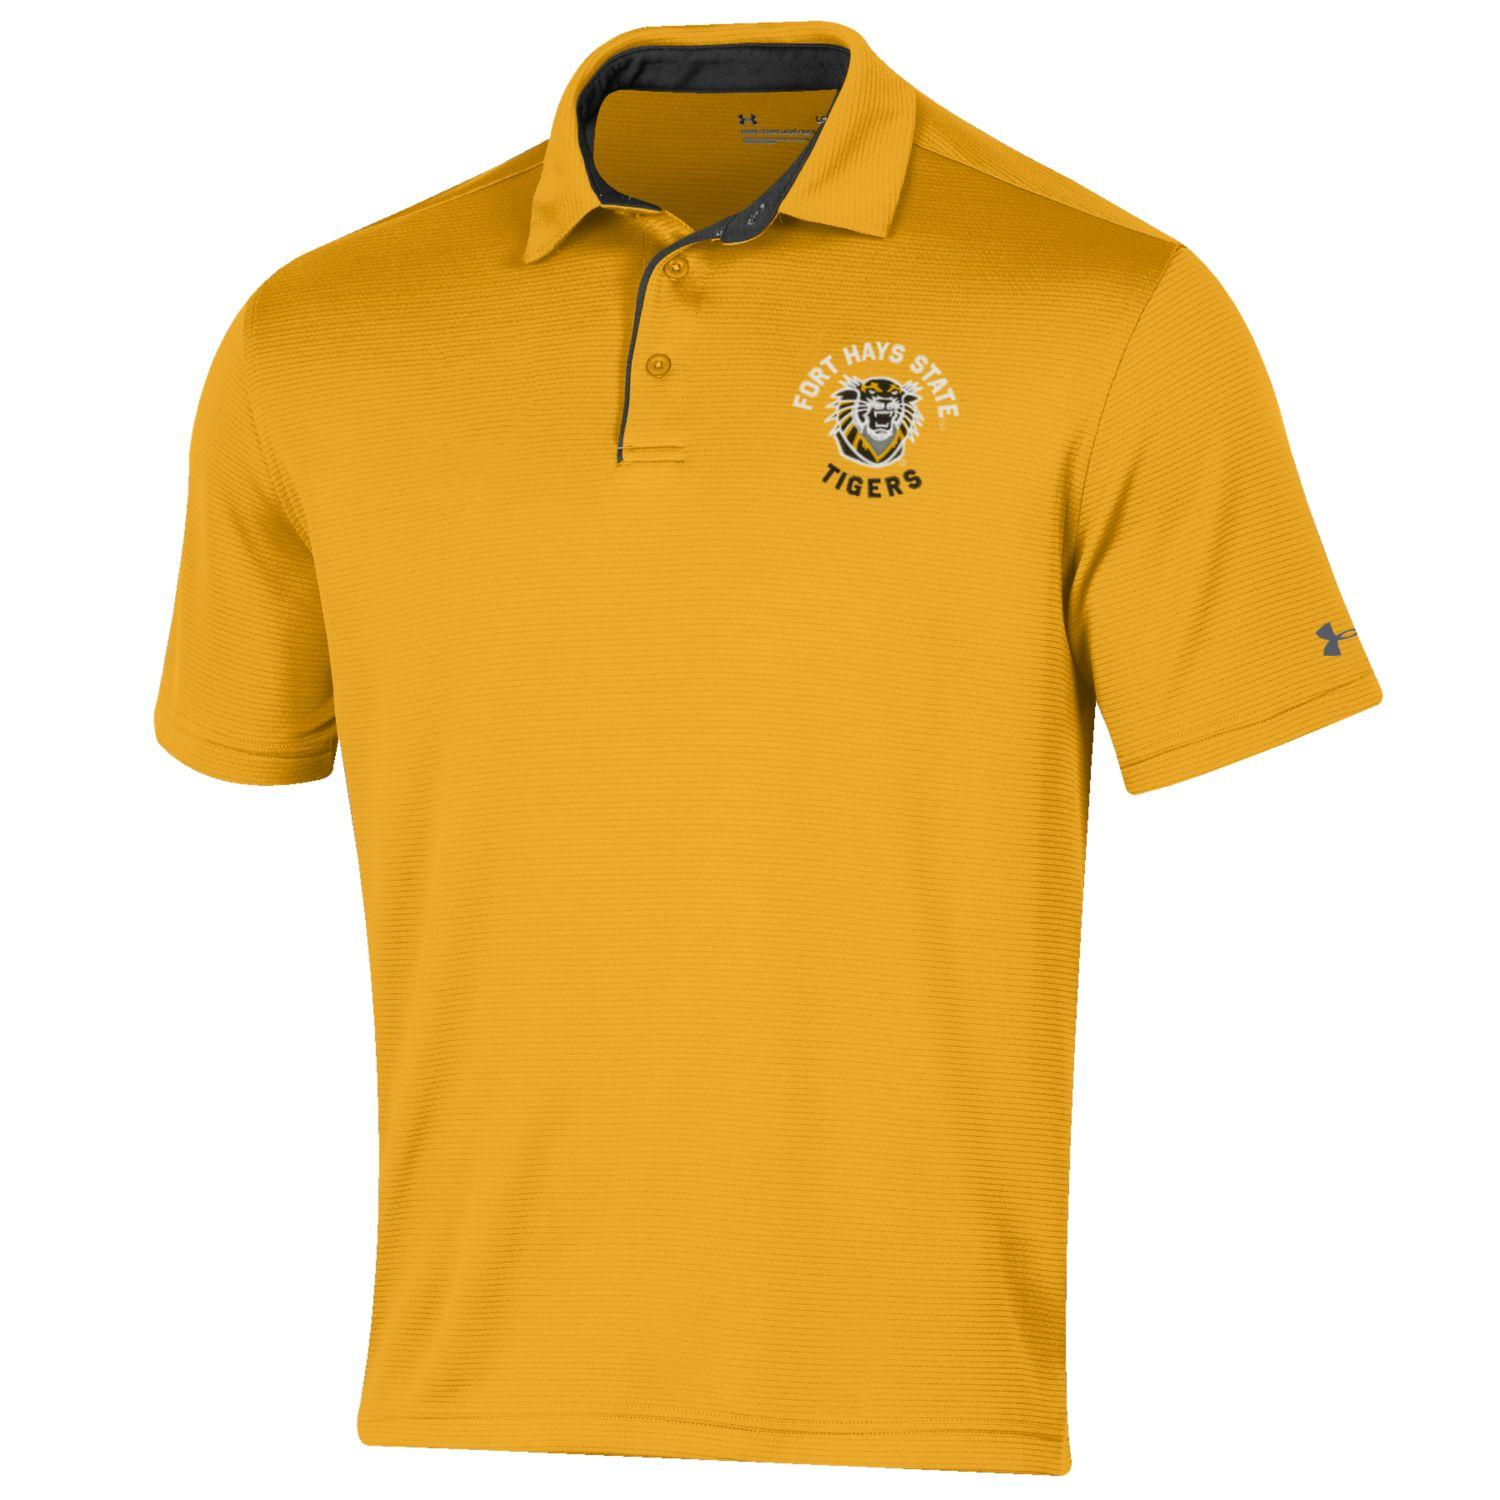 Image for the Fort Hays State University Polo, Steeltown Gold, Under Armour product